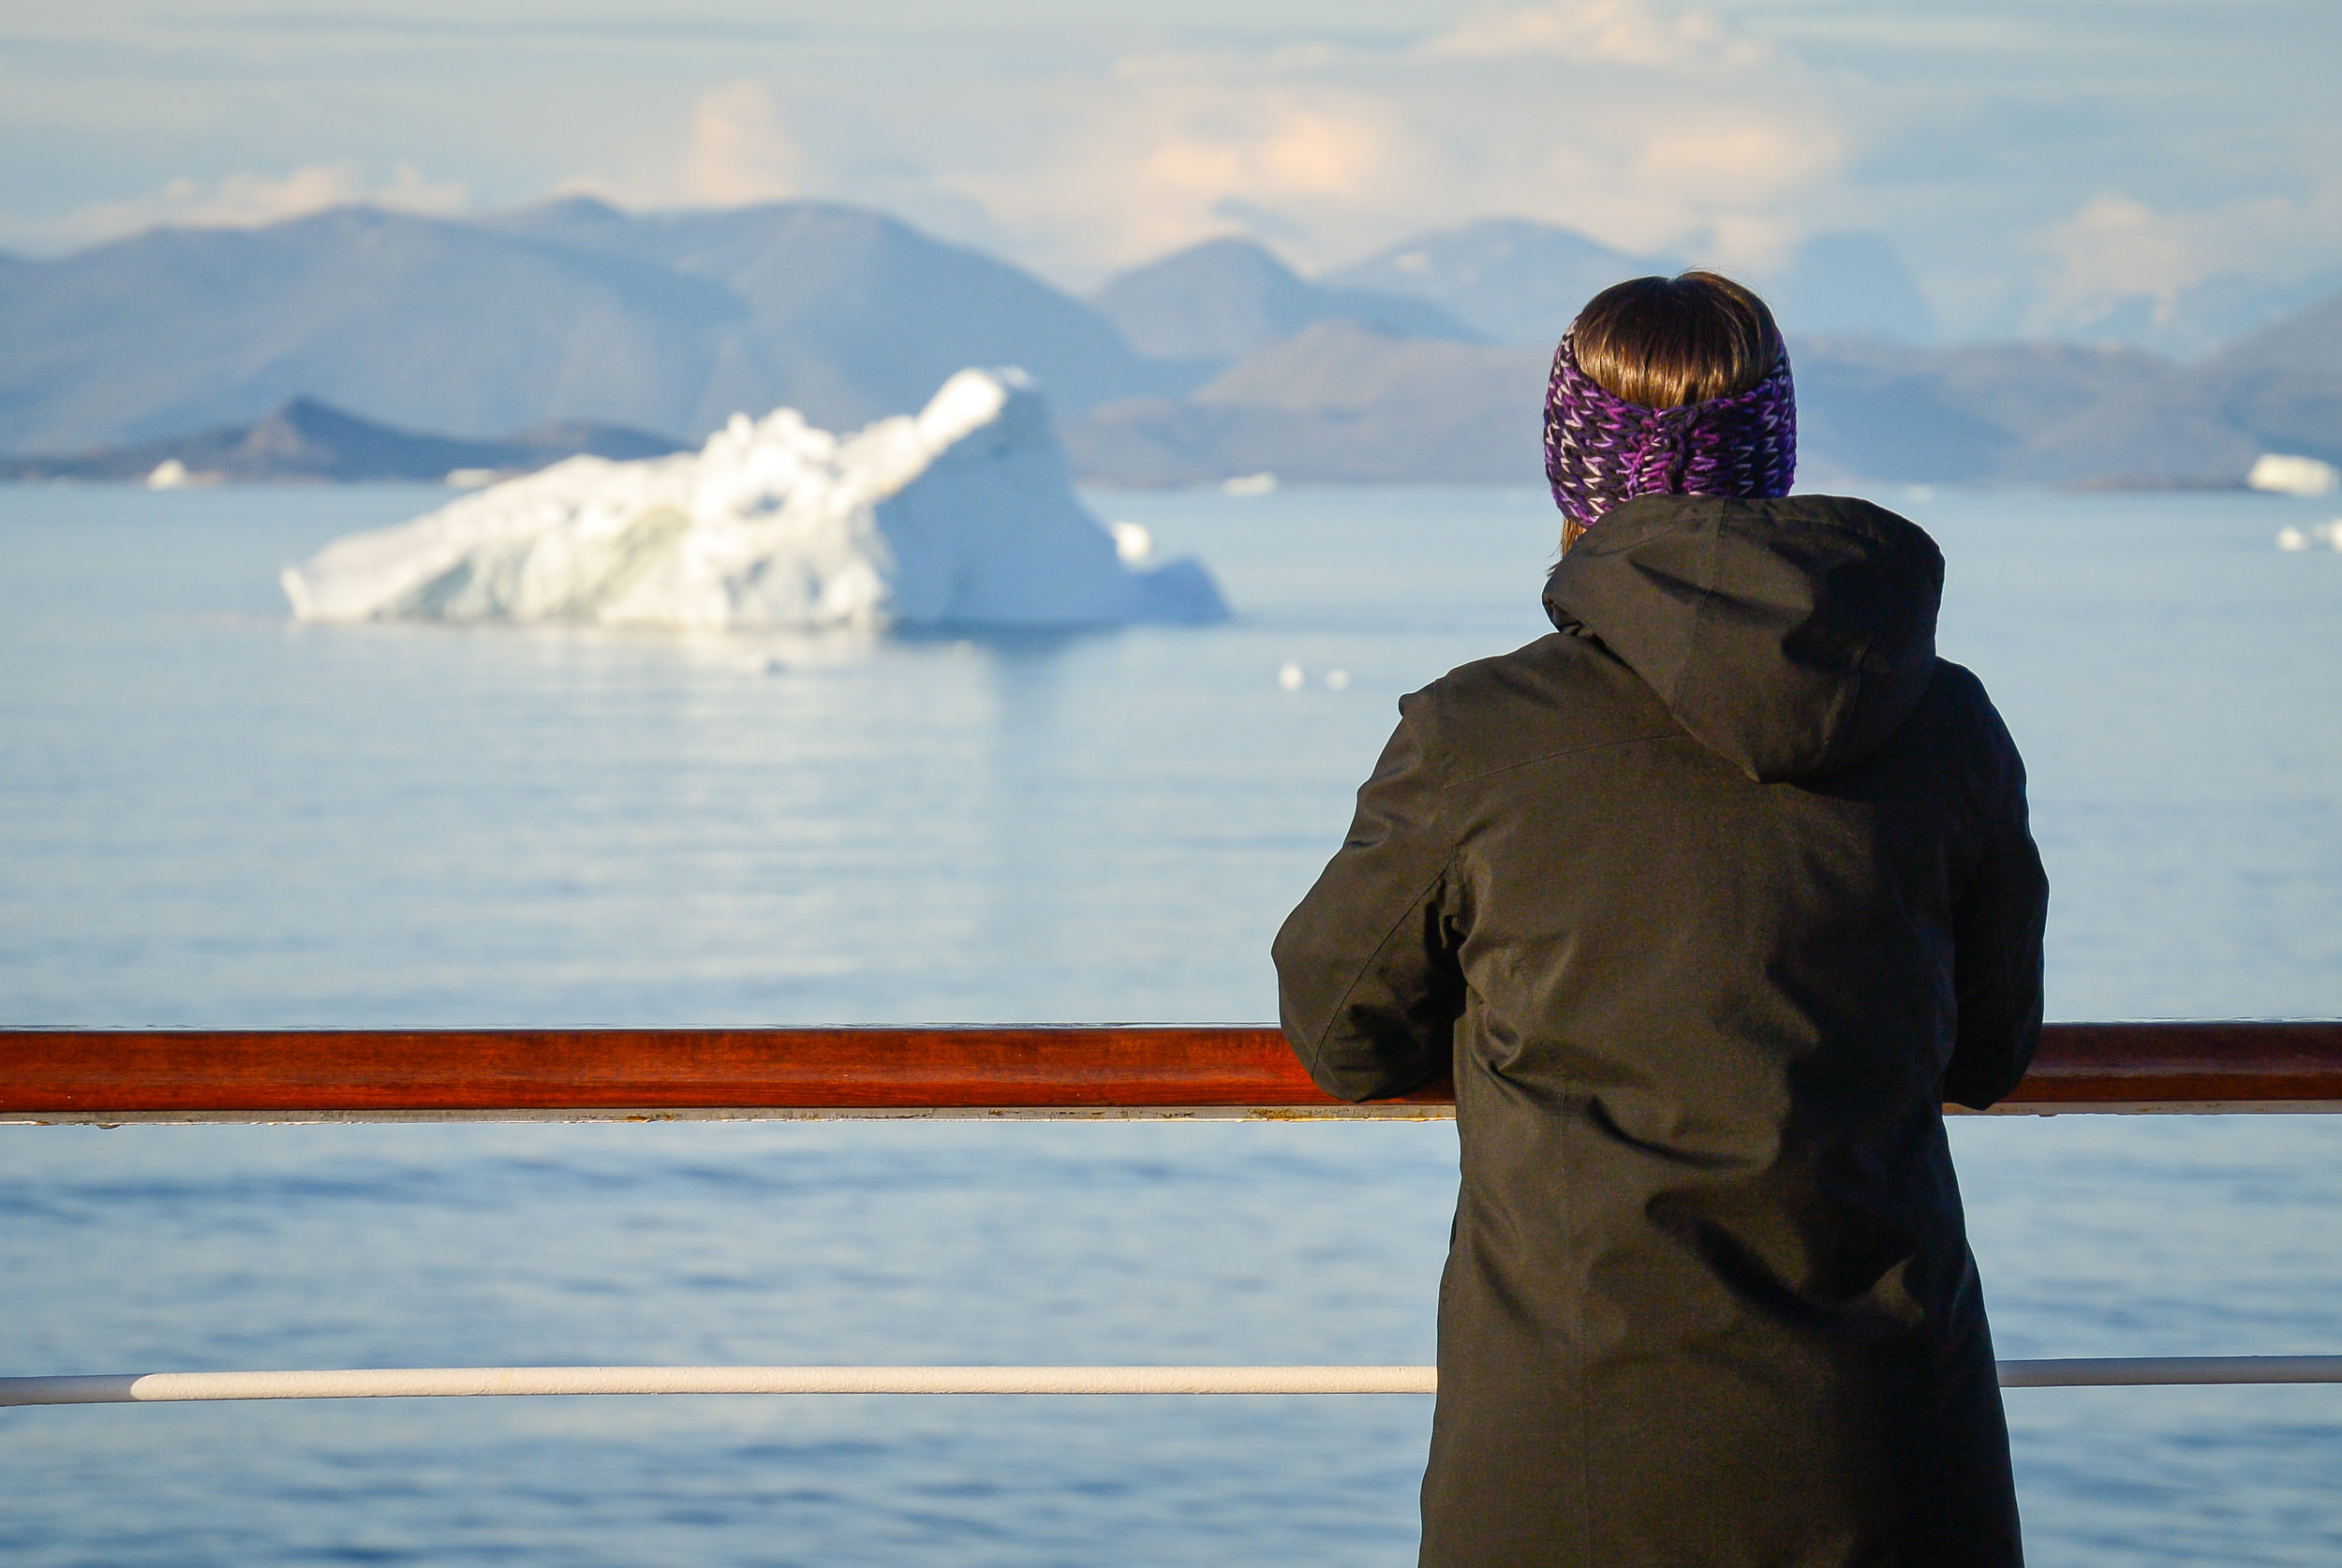 Watching the icebergs float by off the coast of Southern Greenland